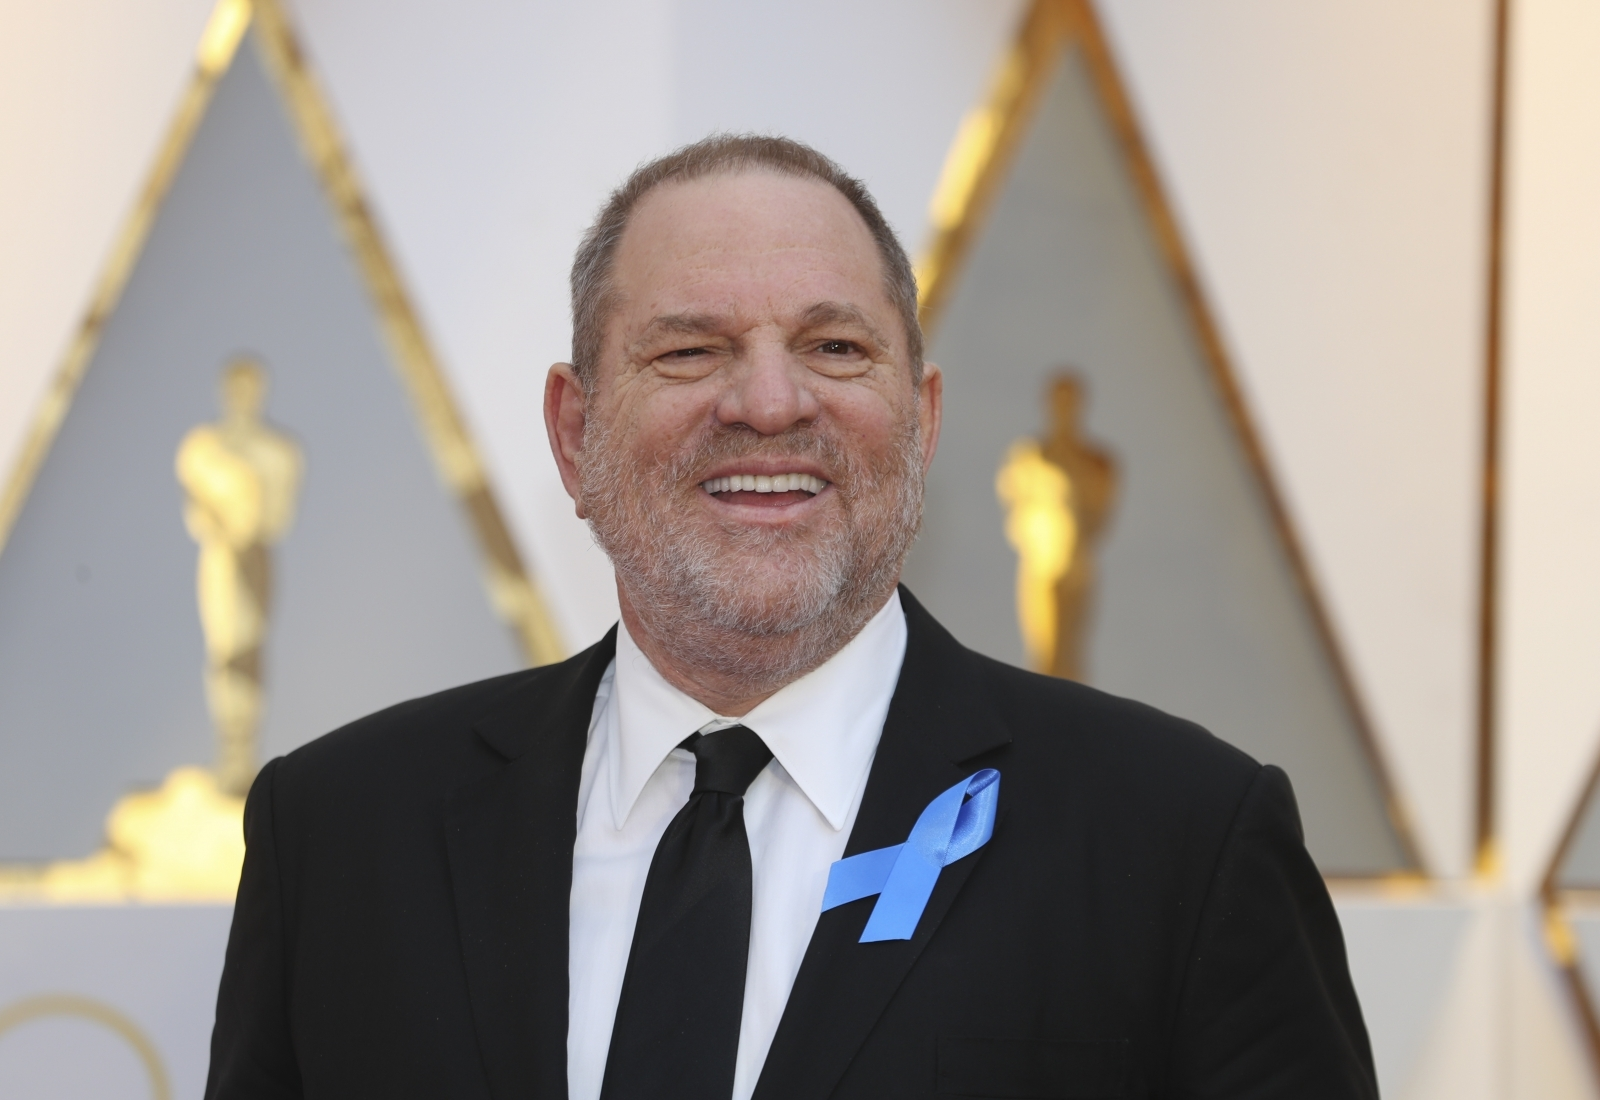 Harvey Weinstein fired from Weinstein Company amid sexual harassment allegations